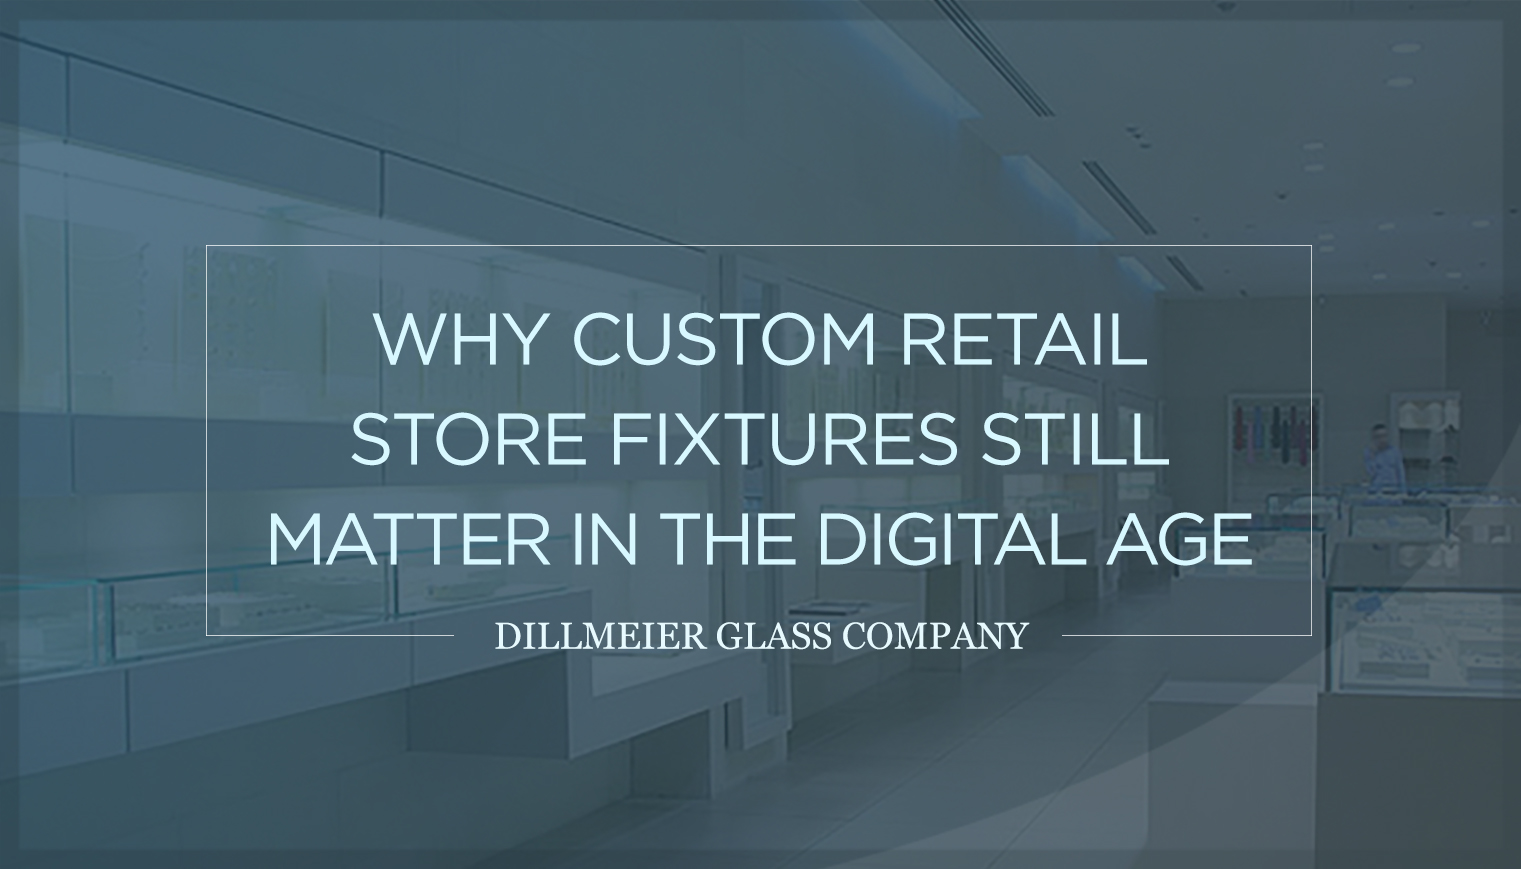 Why Custom Retail Store Fixtures Still Matter in the Digital Age